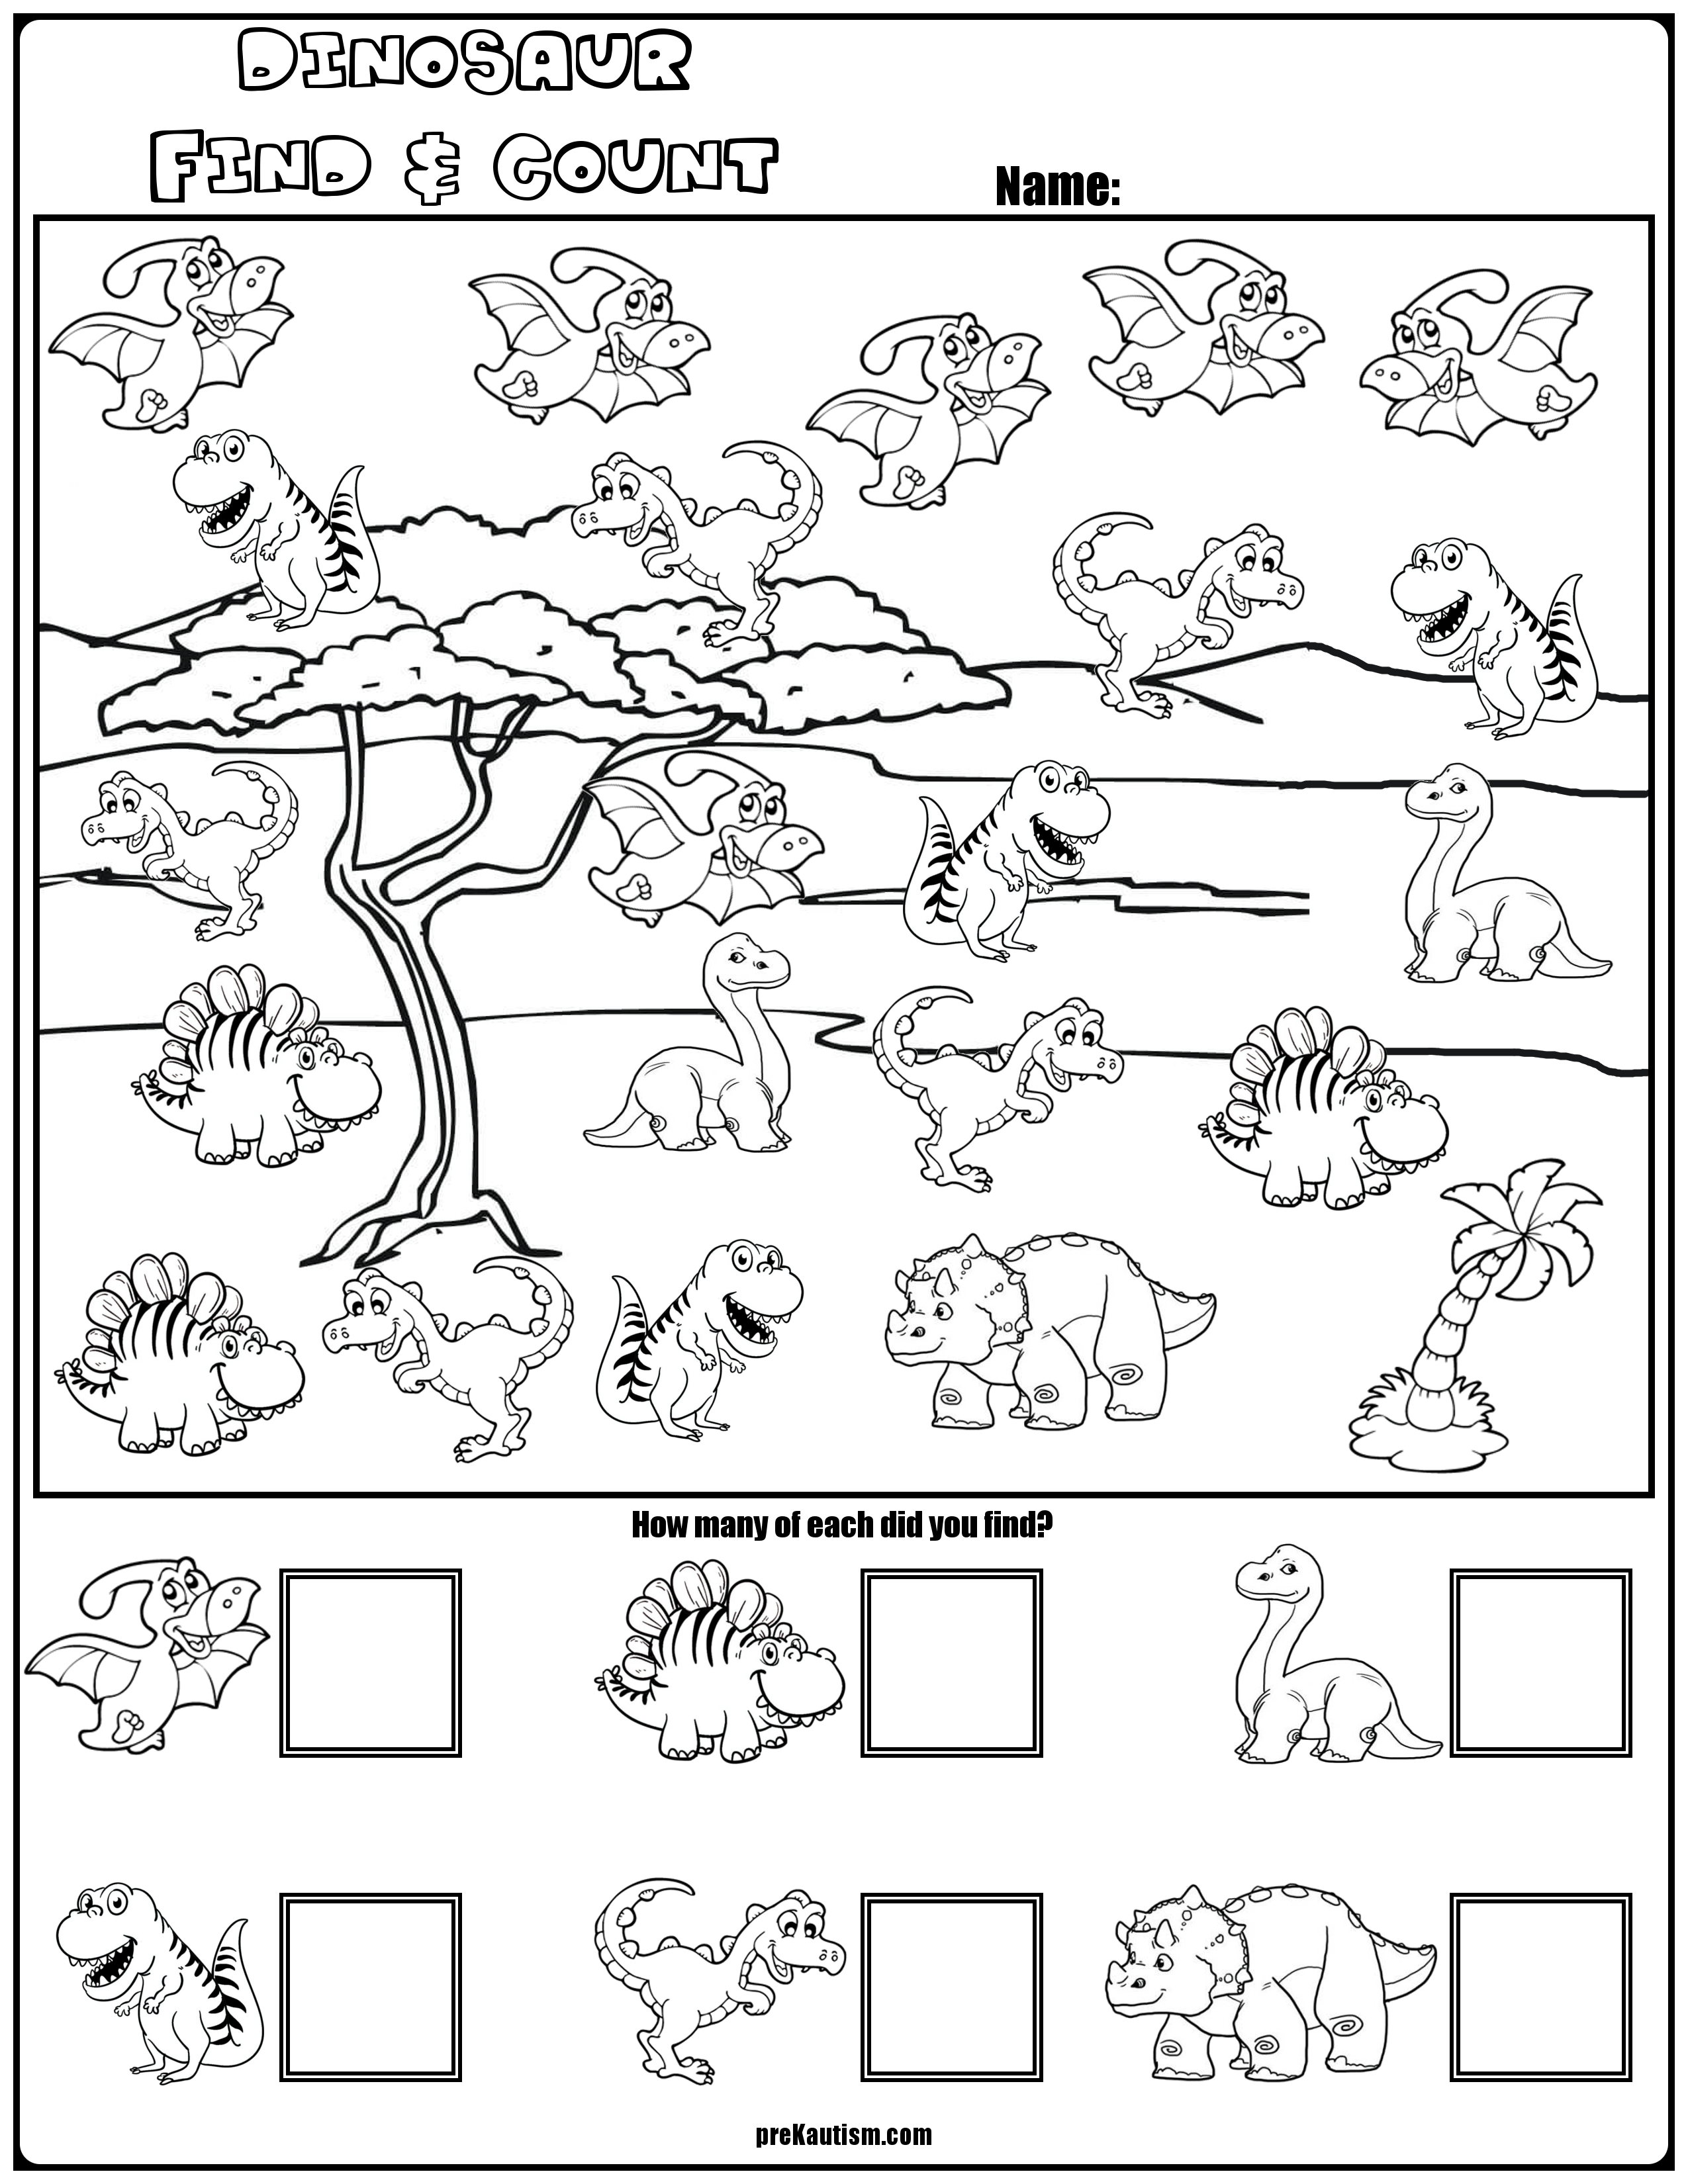 Find Amp Count Dinosaur Characters